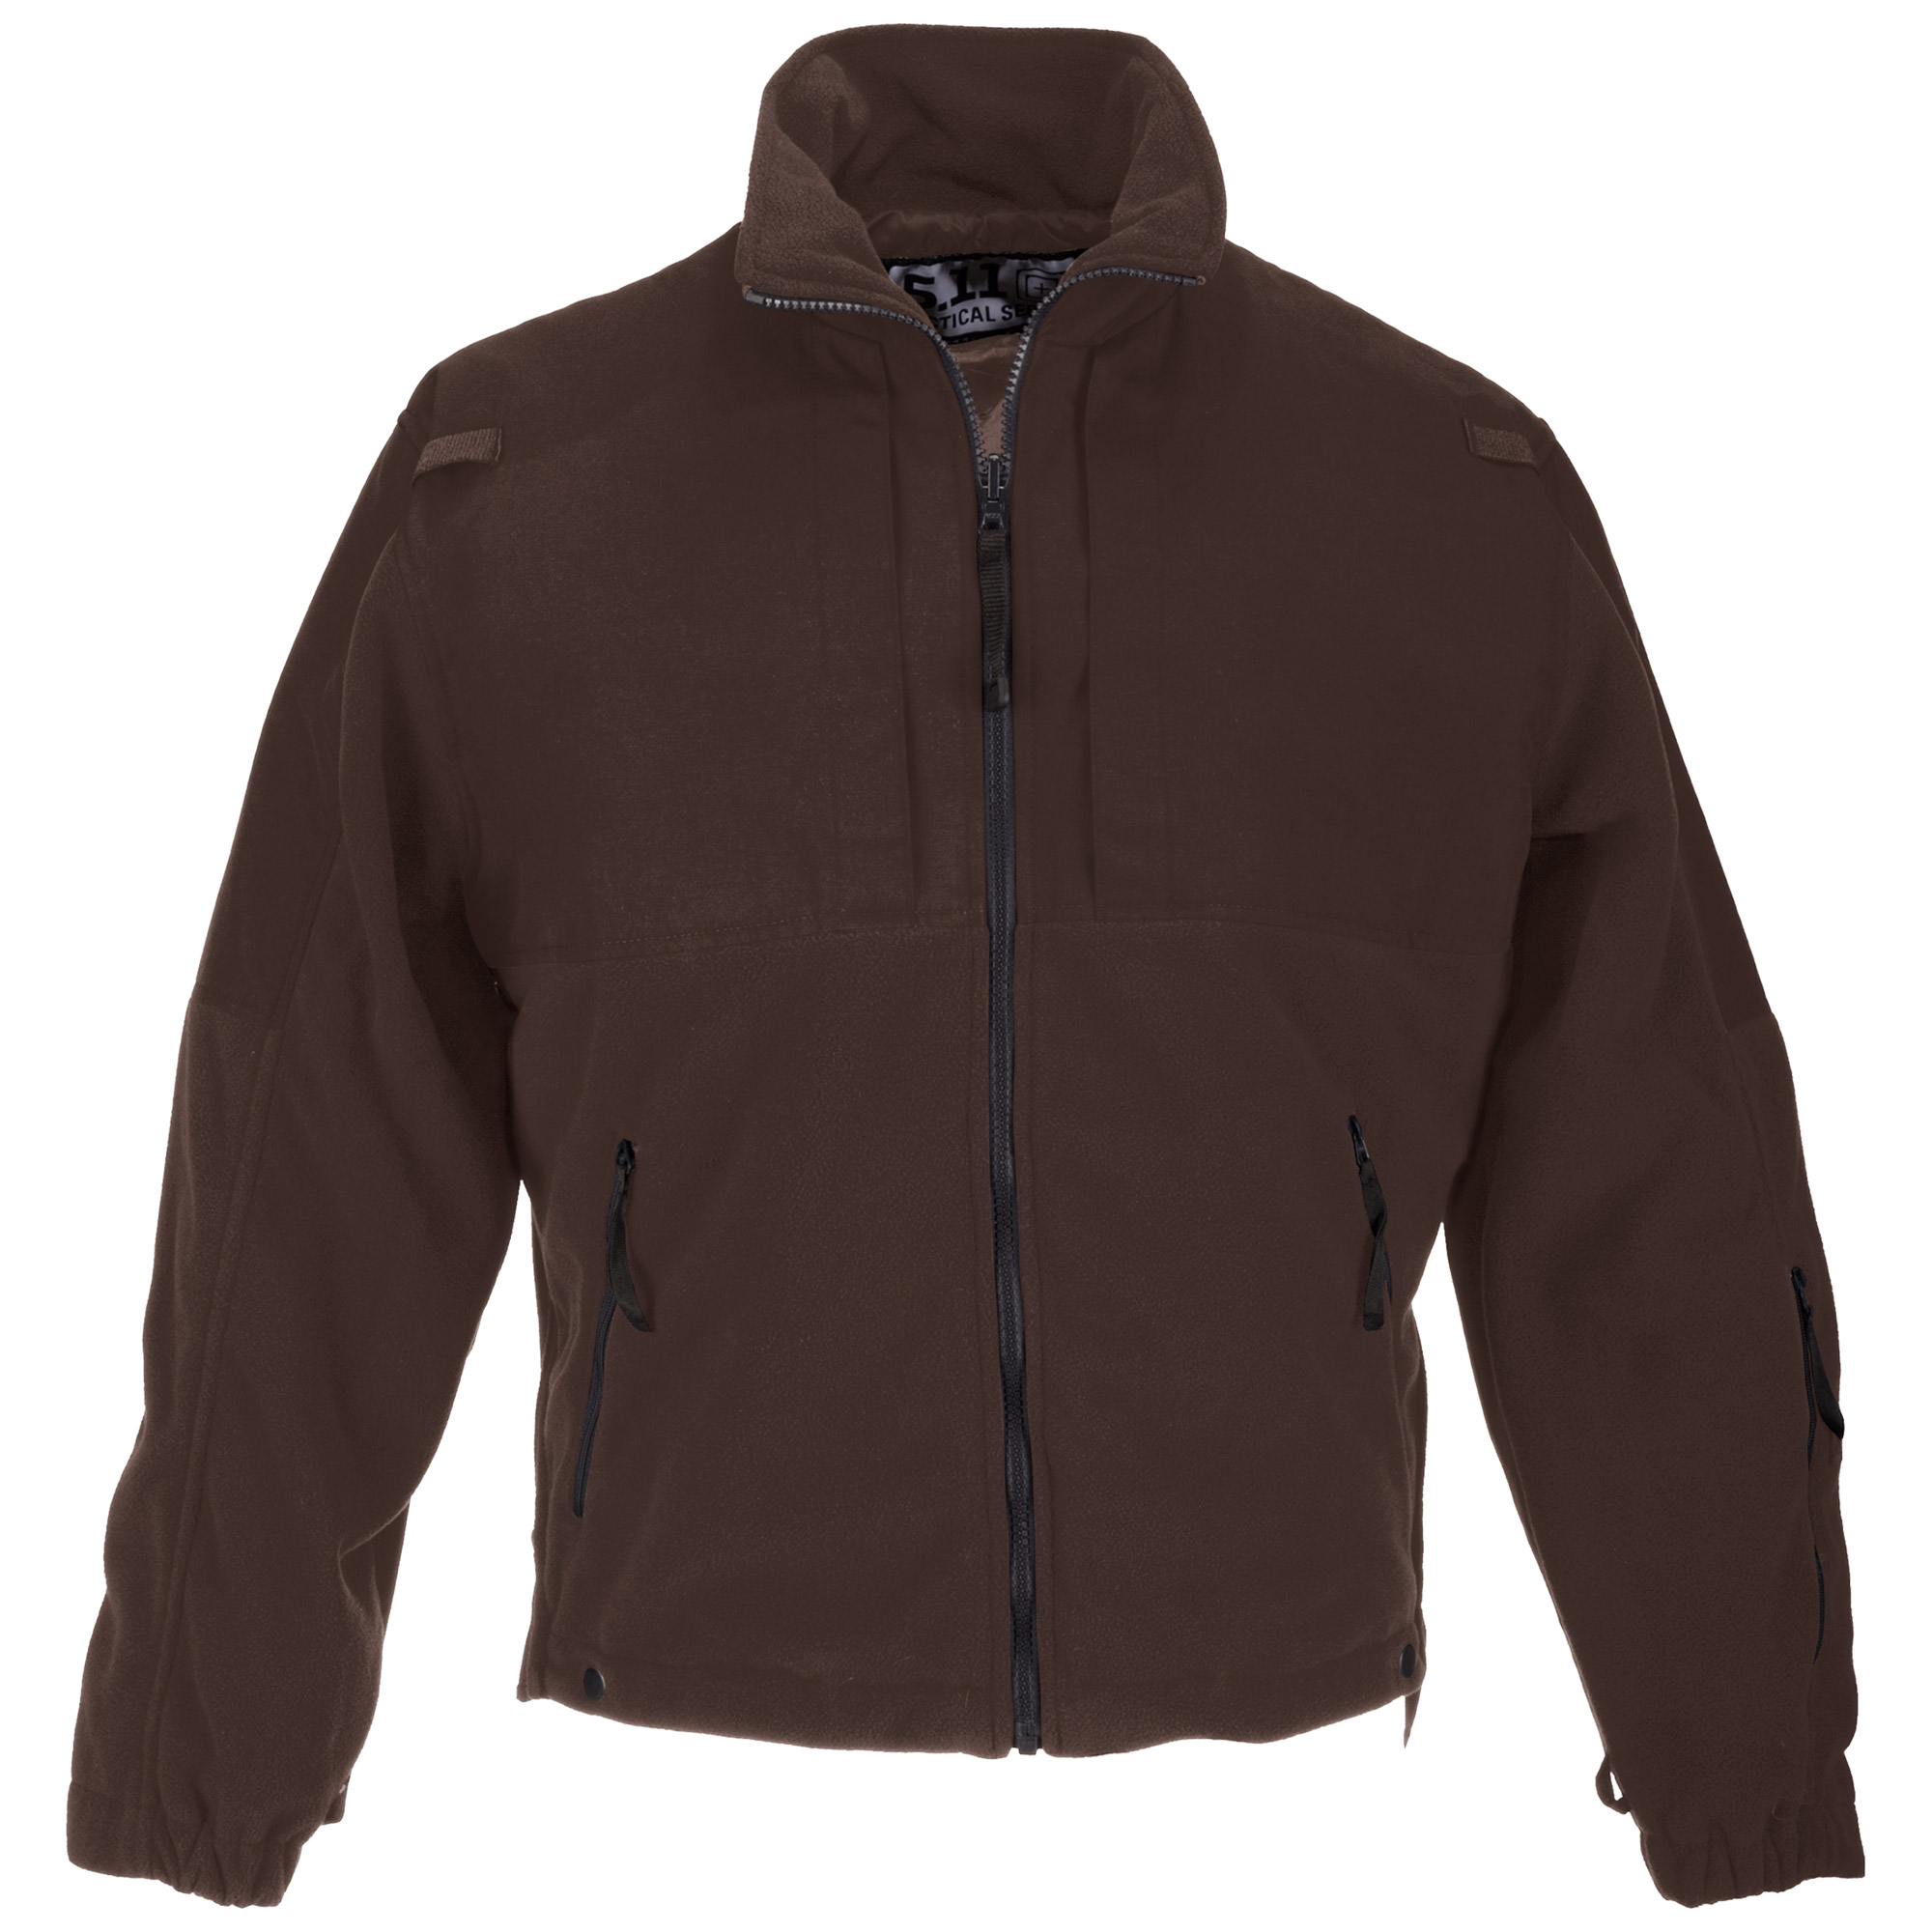 5.11 Tactical Men's Tactical Fleece (Brown)